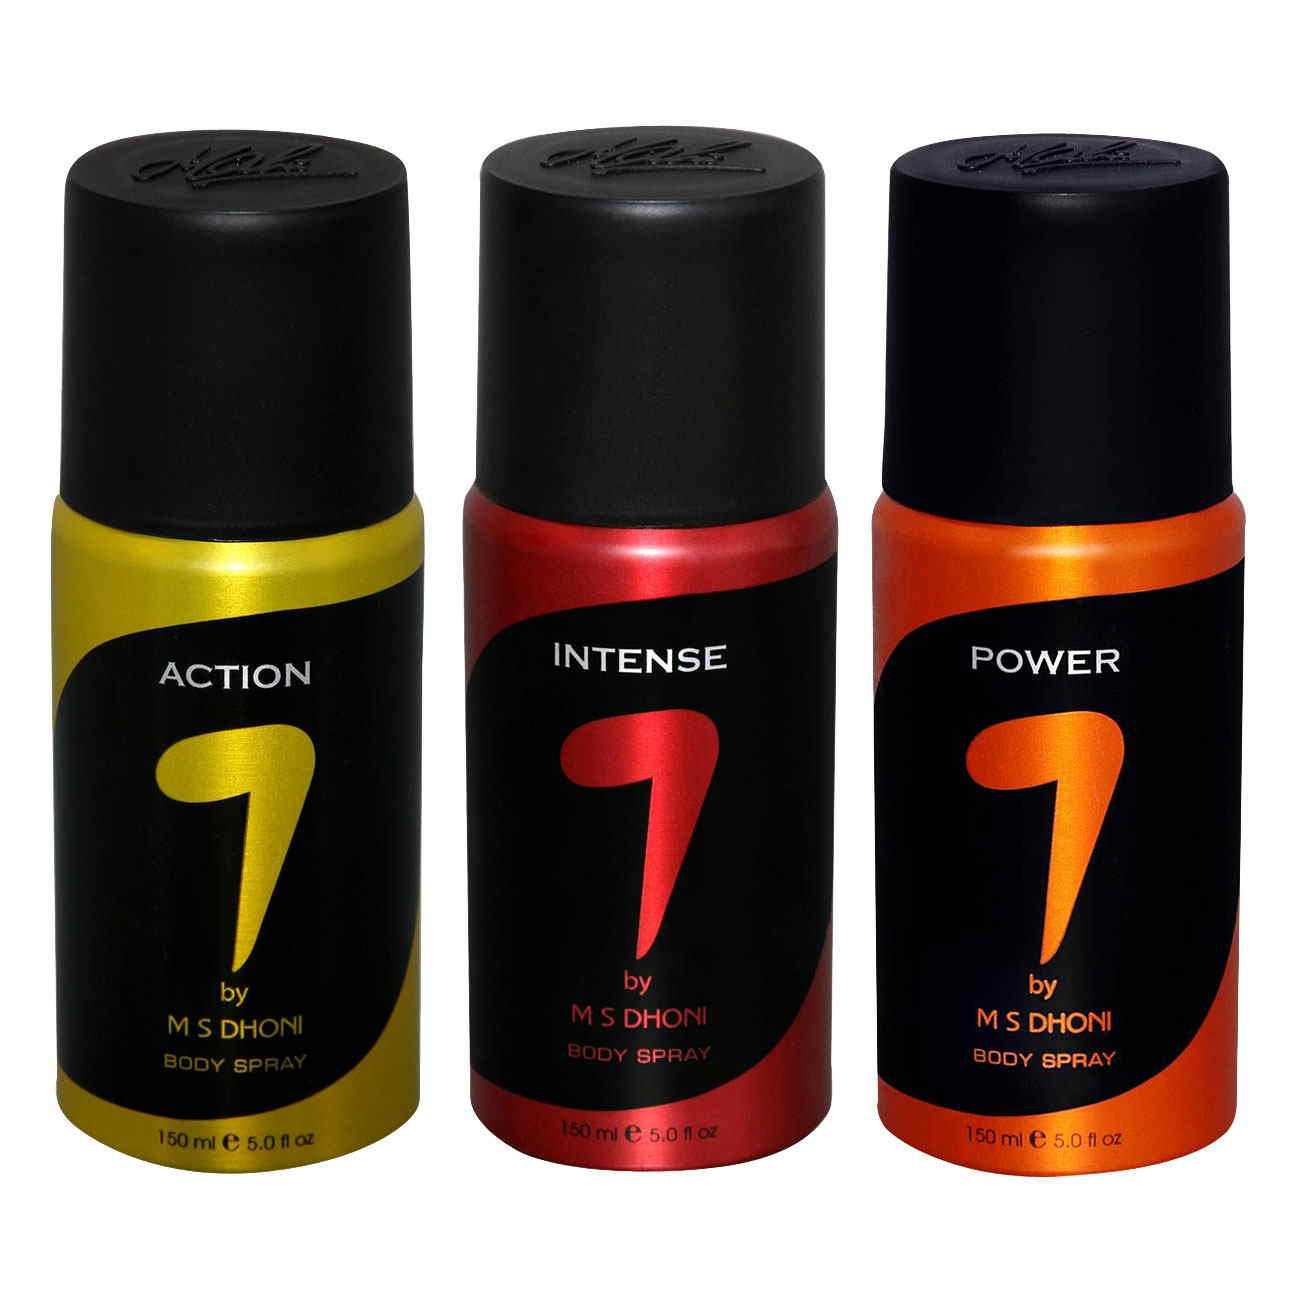 7 by MS Dhoni Action, Intense, Power Pack of 3 Deodorants